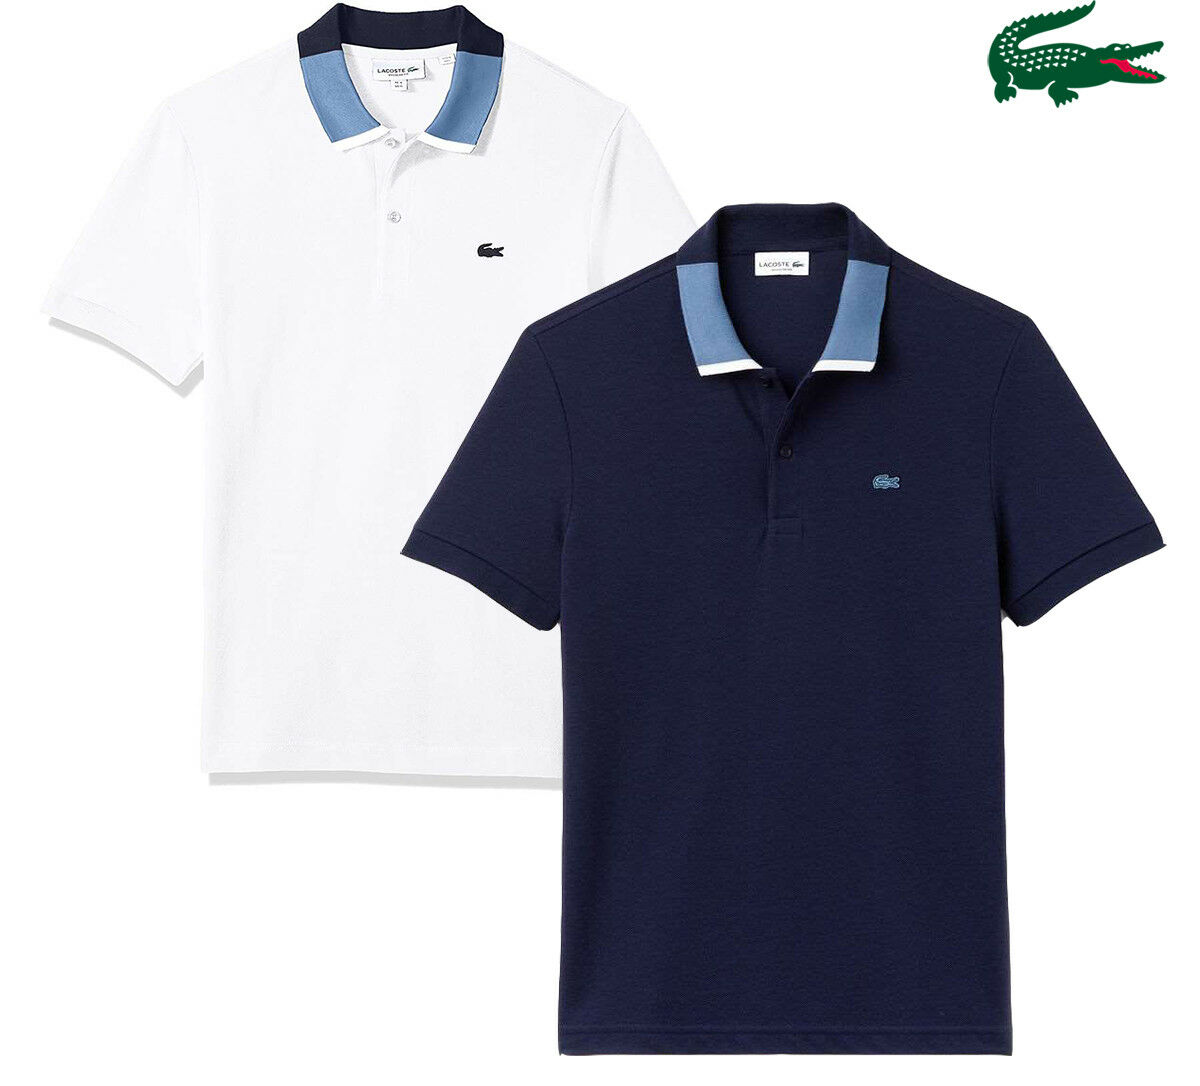 NEW Lacoste Men's Contrast Collar Pique Regular Fit Polo 2-Ply T-Shirt